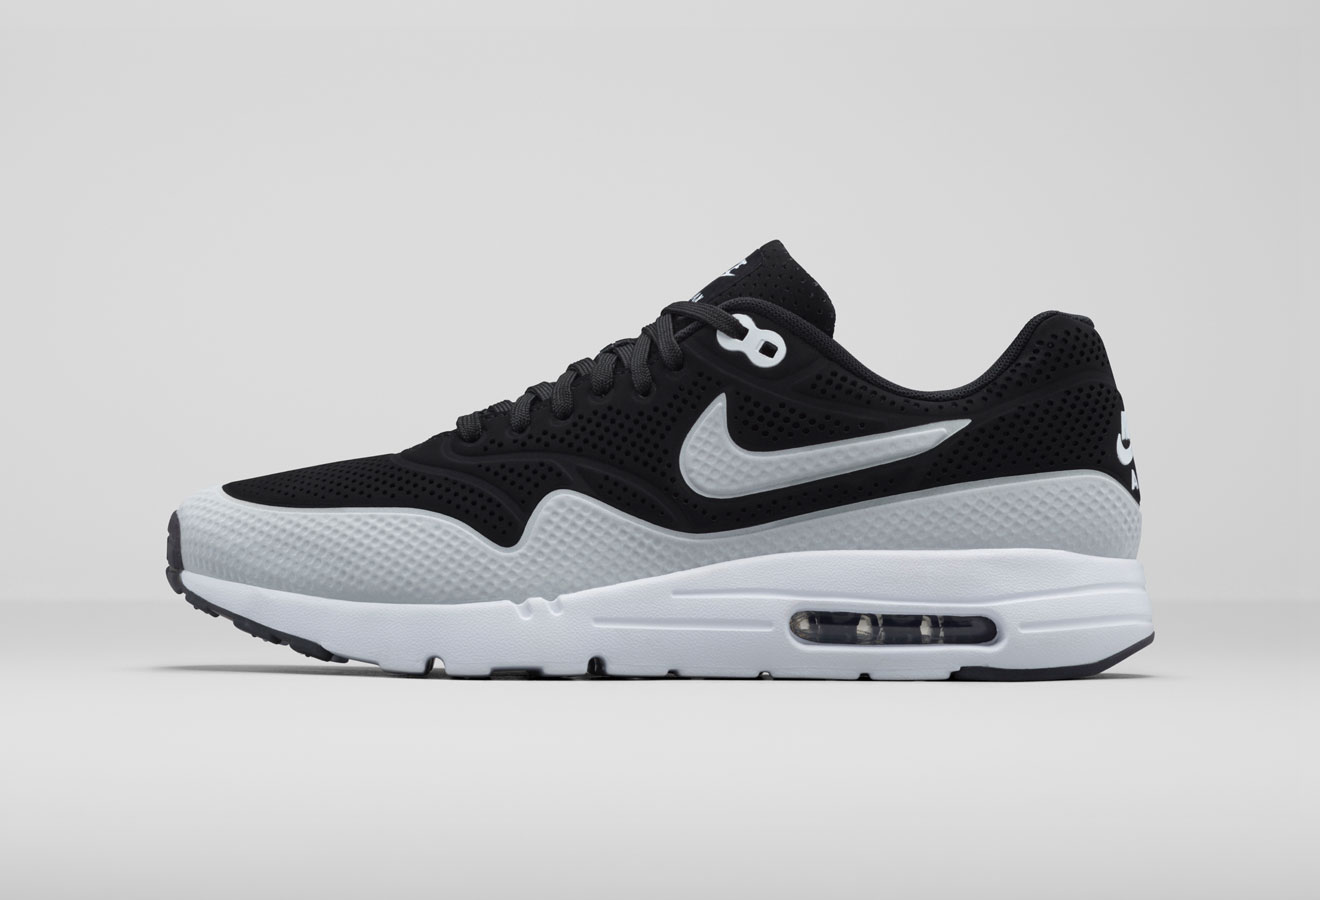 zapatillas nike air max venta chile